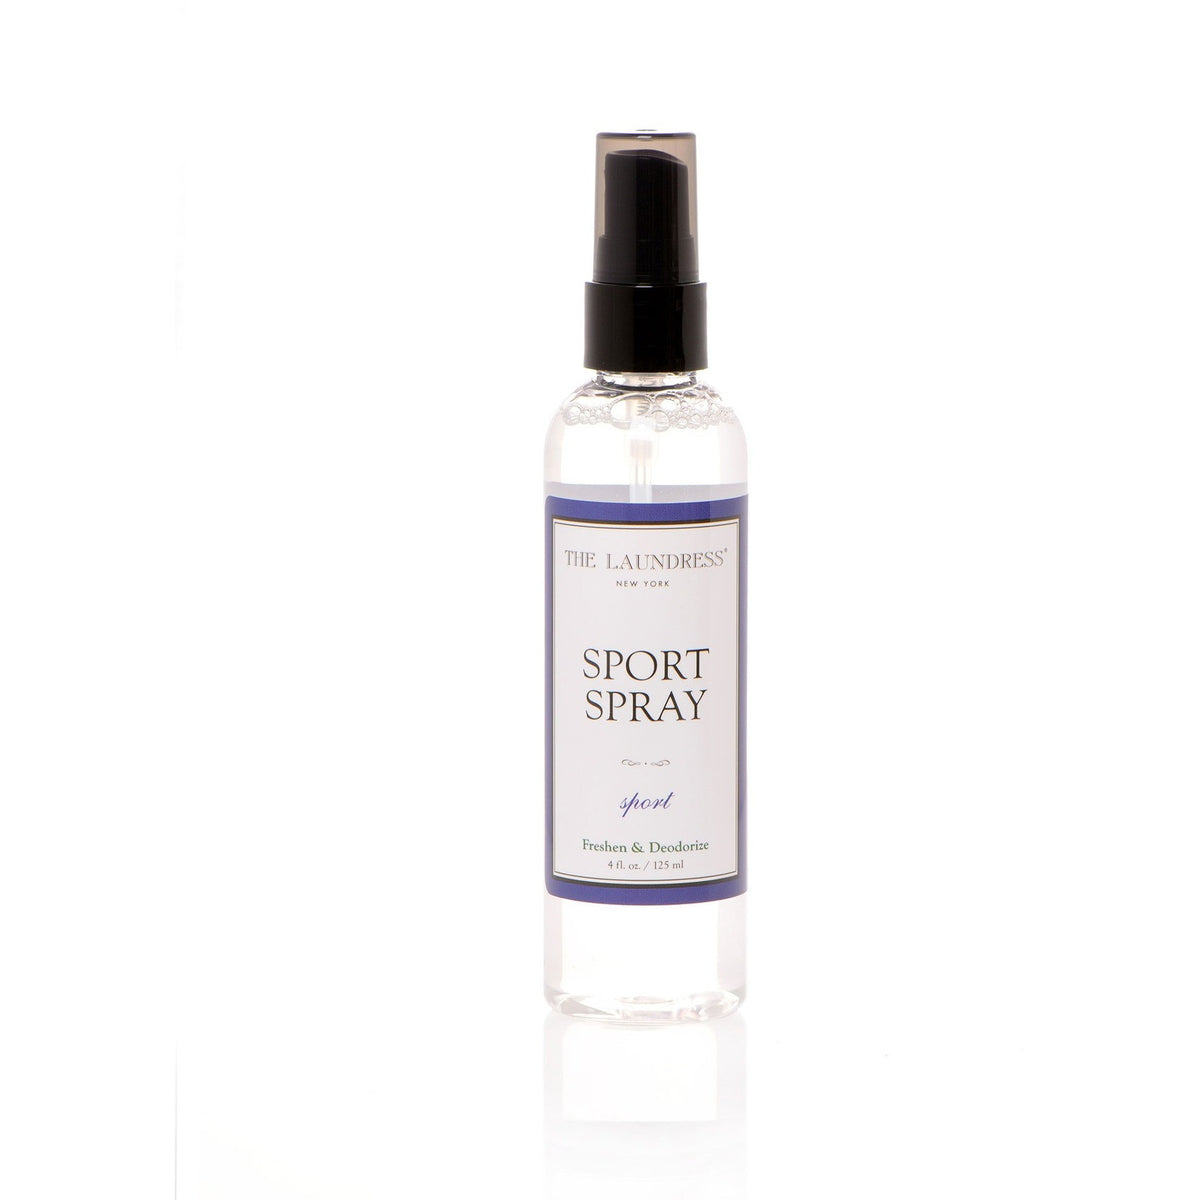 the laundress - sport spray[product_type ]the laundress - Kiss and Makeup